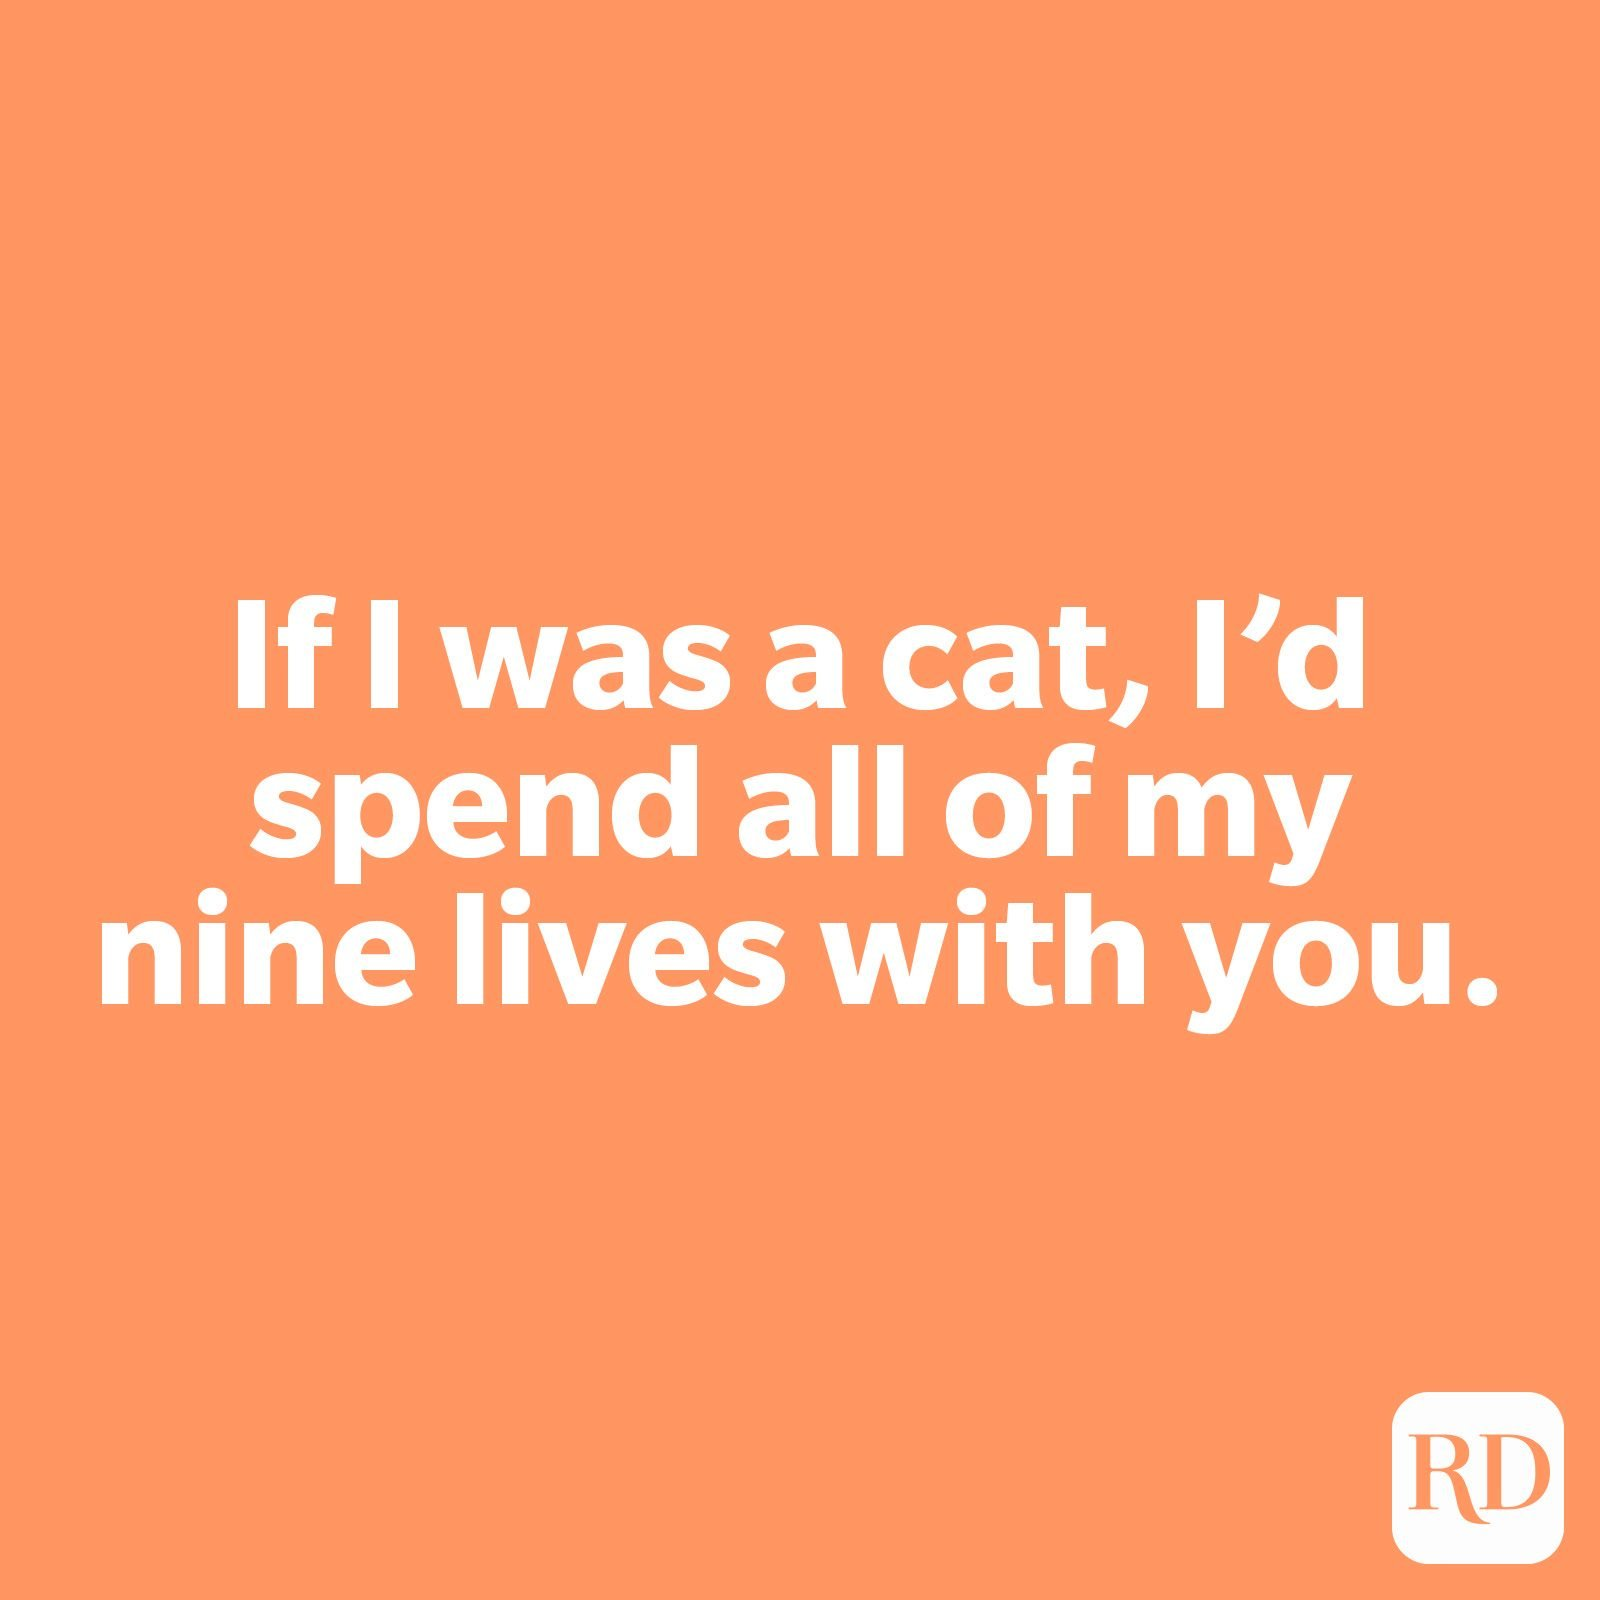 If I was a cat, I'd spend all of my nine lives with you.